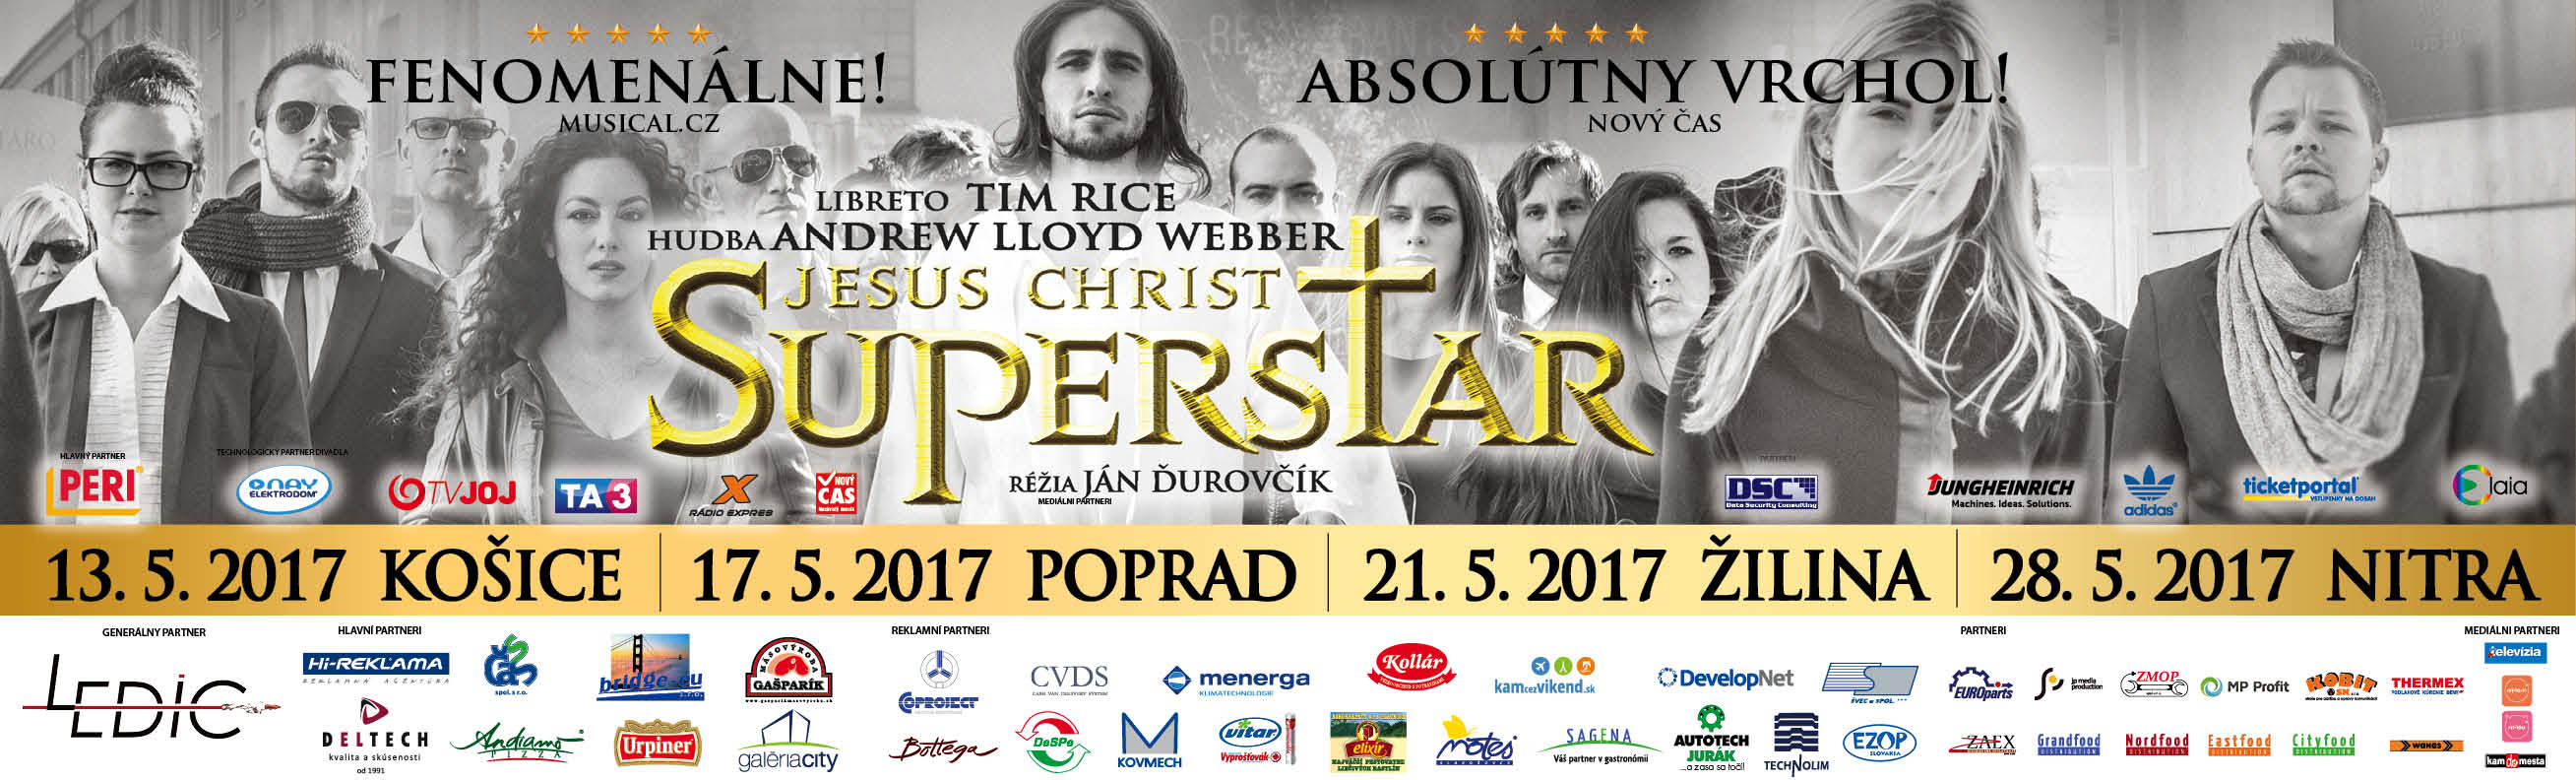 Jesus superstar NR 042017